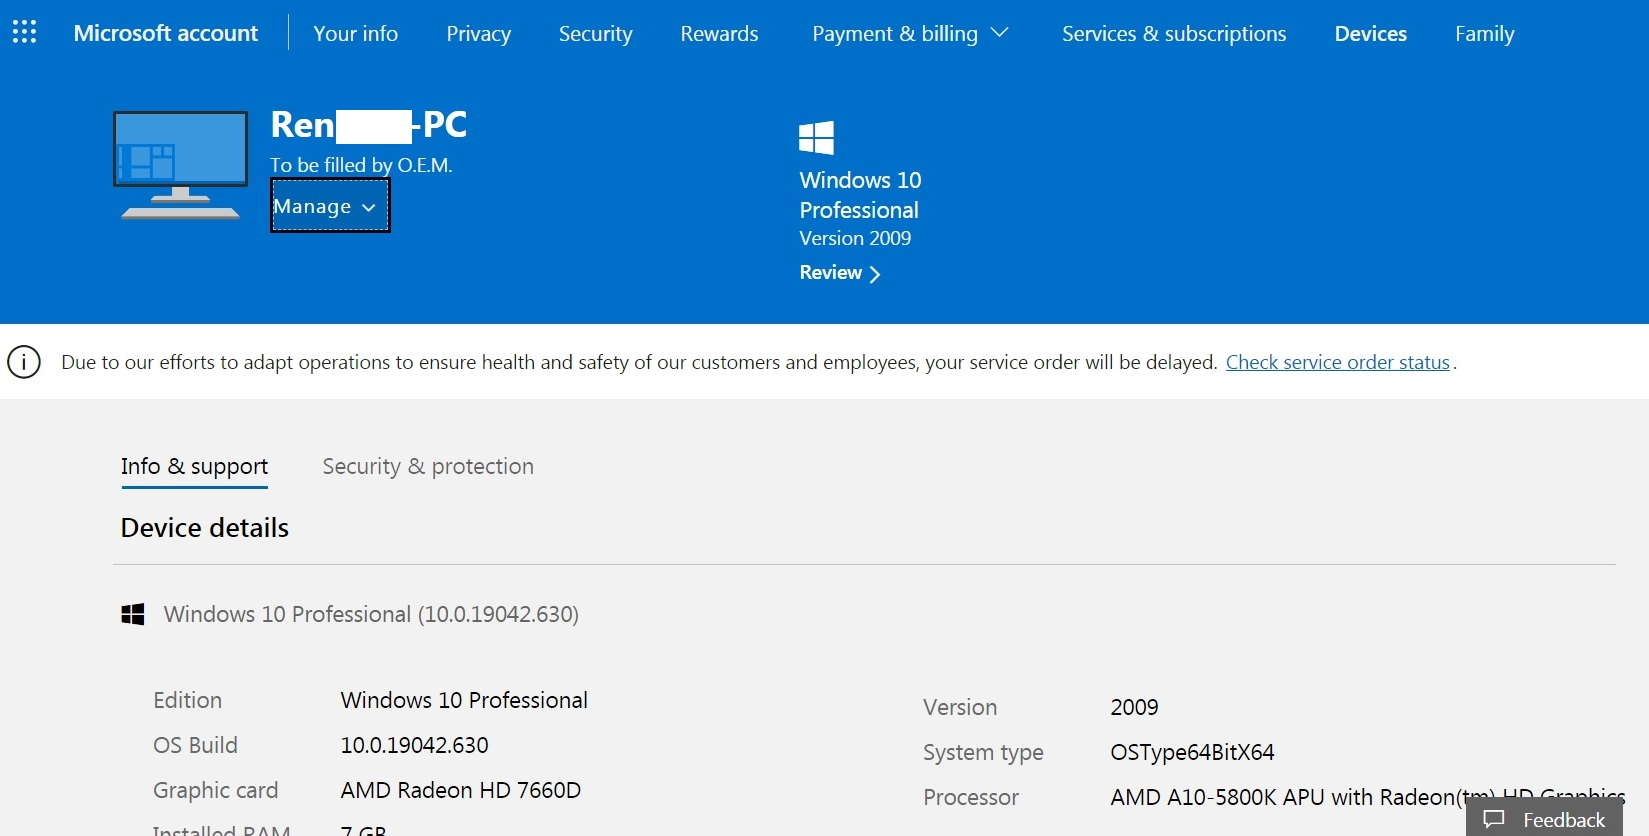 Windows 10 has a digital activation, but now can't install Windows 10 without key - PLEASE help 72aea9ed-1a27-4eb8-b335-796947673be6?upload=true.jpg